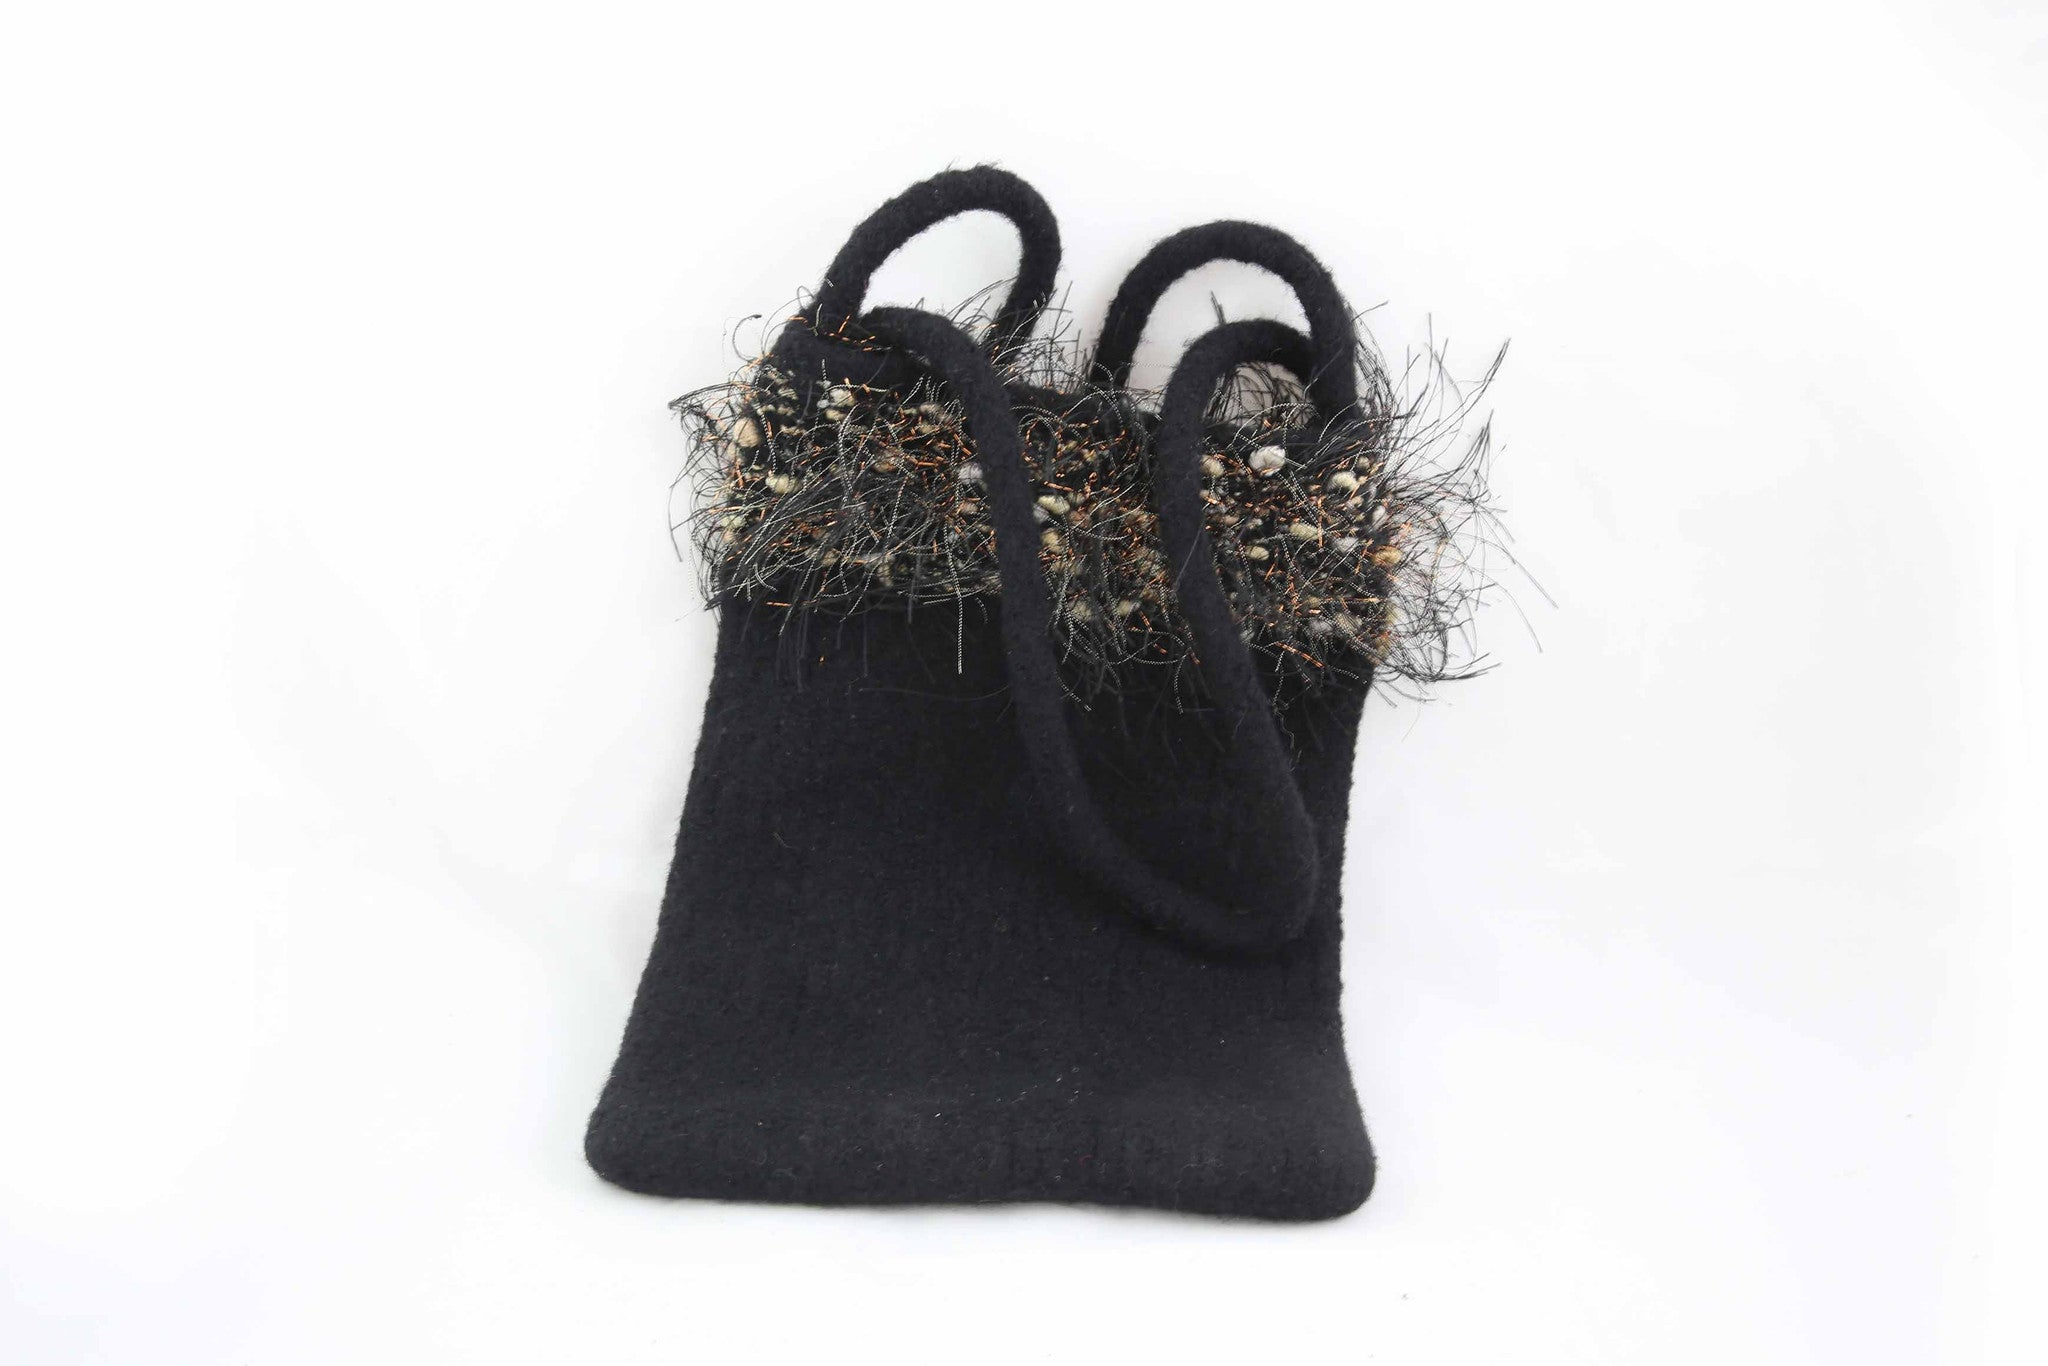 Hand Knitted & Felted Embellished Purse by Marsha R. Maupin